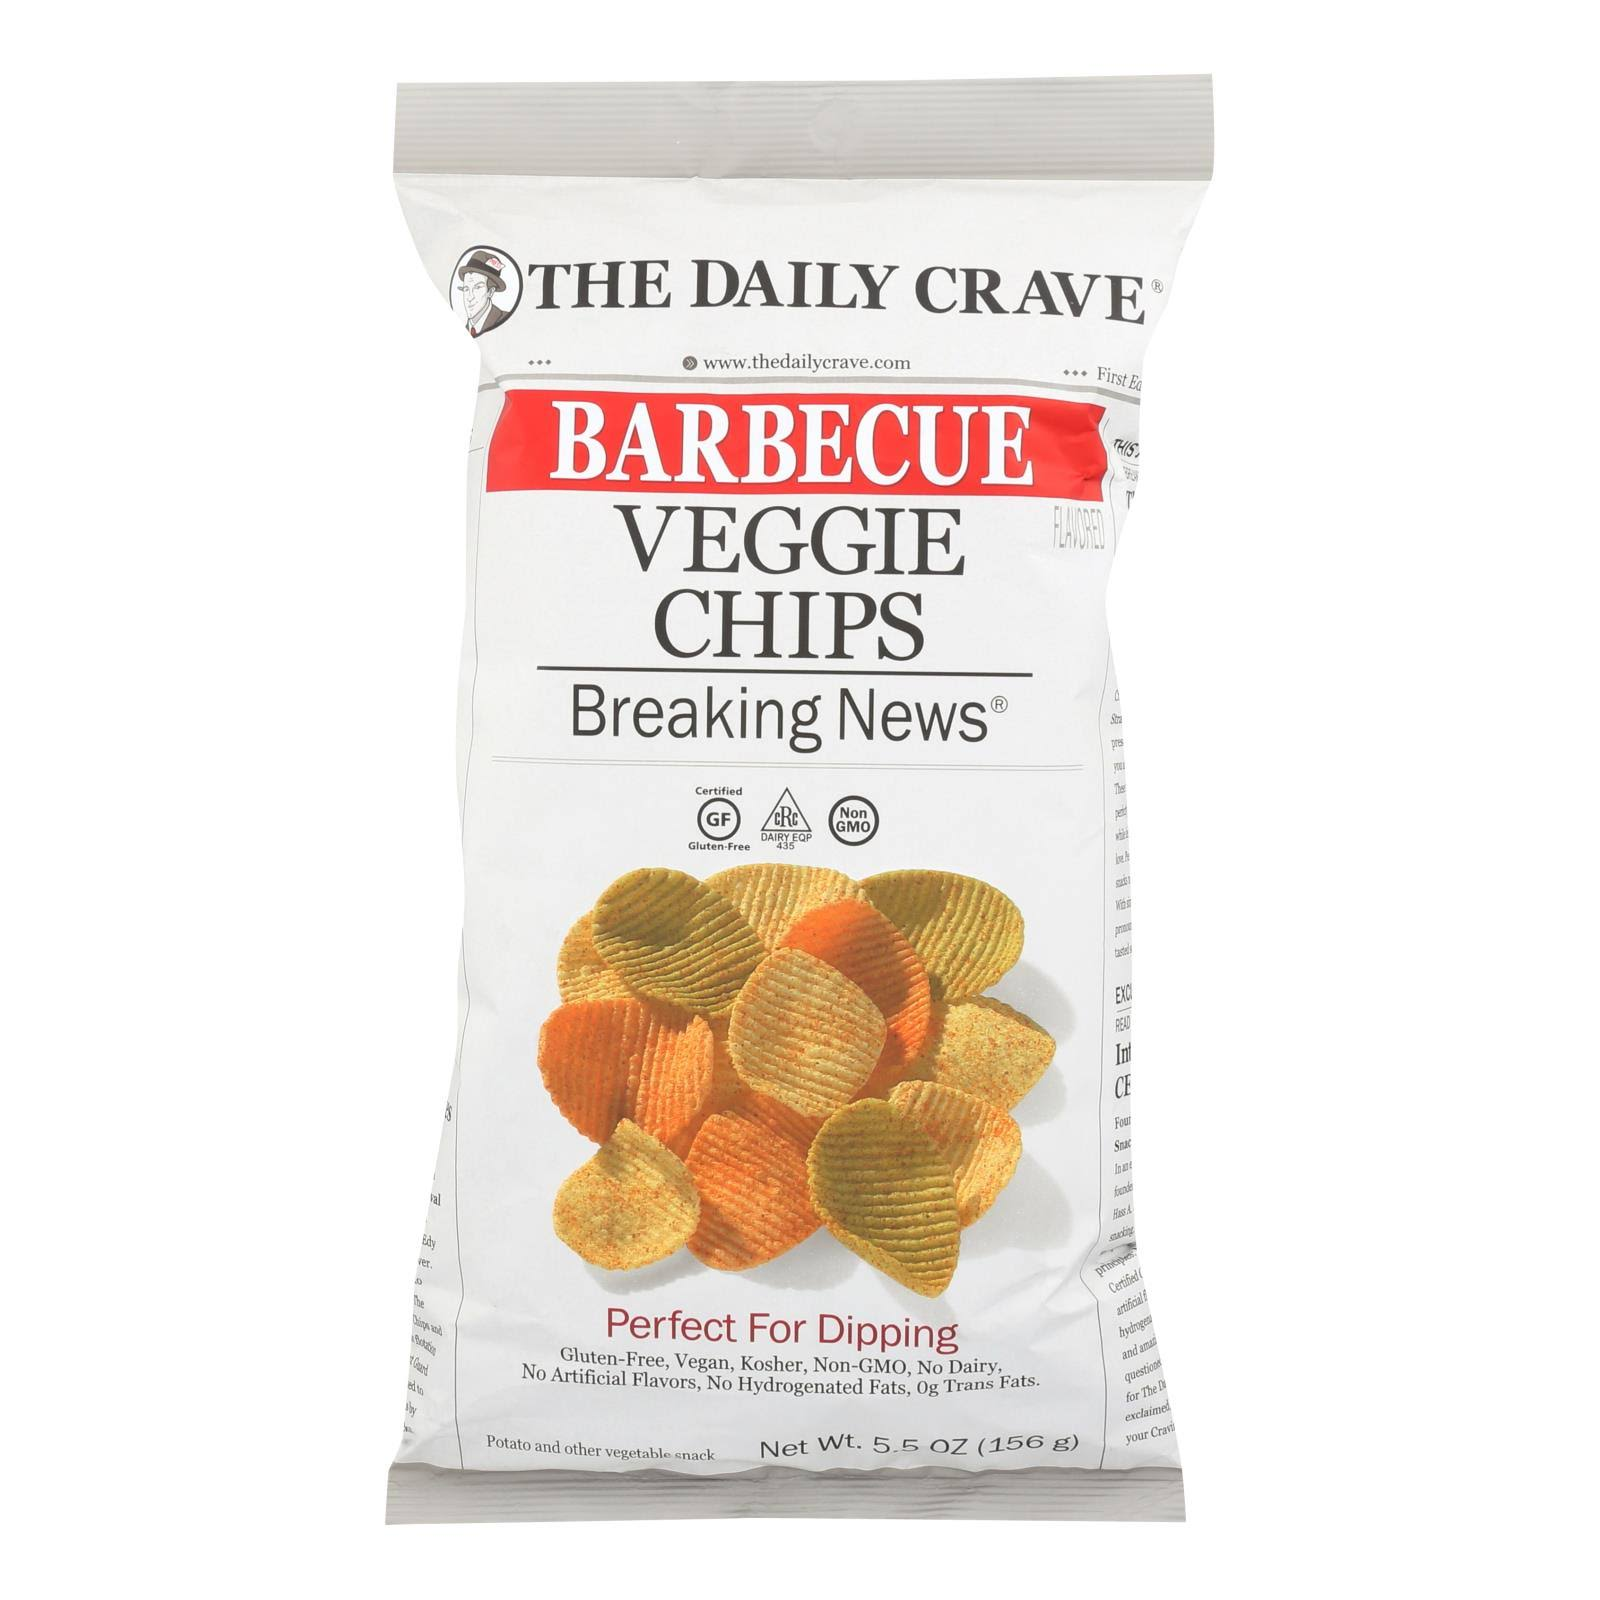 The Daily Crave Veggie Chips, Barbecue Flavored - 5.5 oz